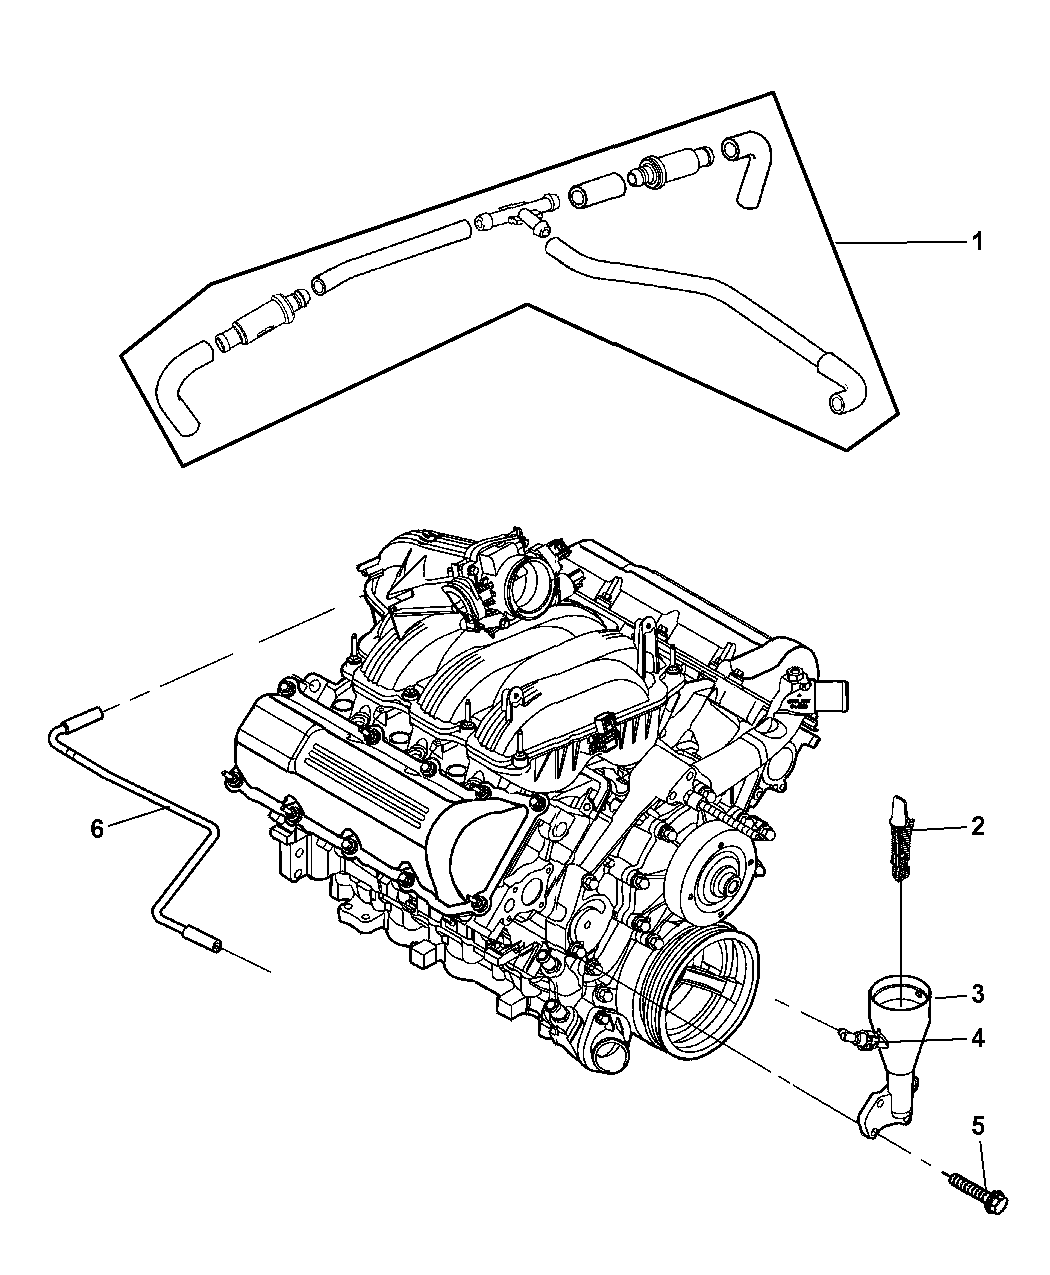 2005 Jeep Grand Cherokee Crankcase Ventilation A Map Of Wiring For Thumbnail 2